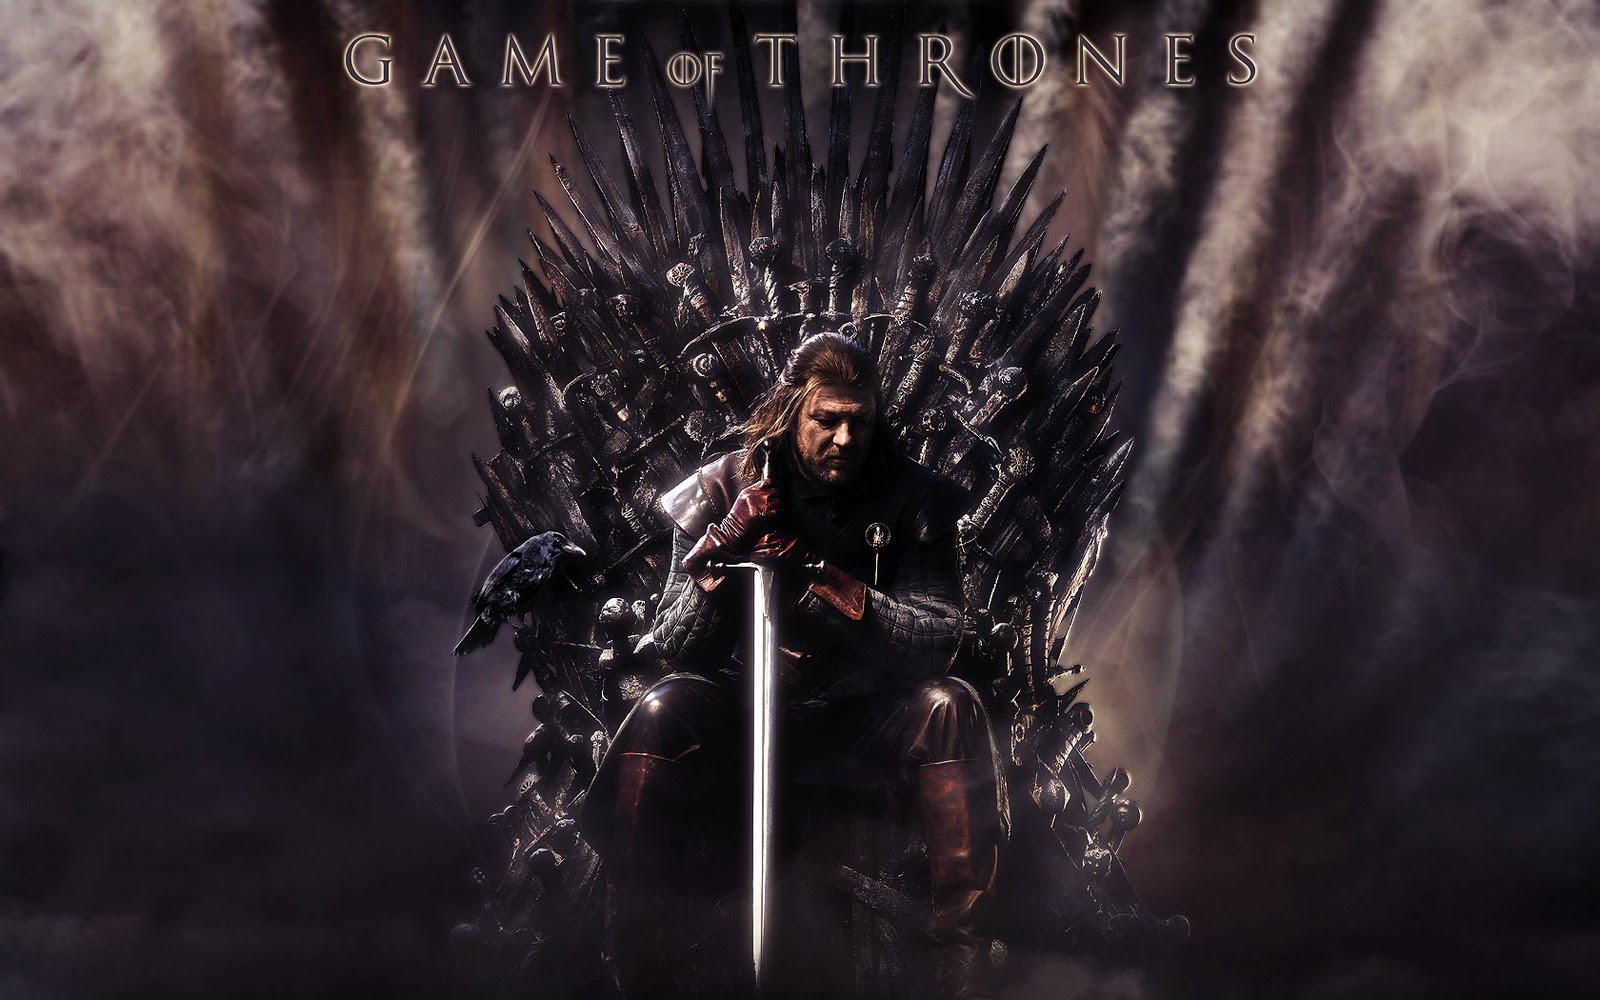 Eyesurfing Game of Thrones Wallpaper From TV Series 1600x1000